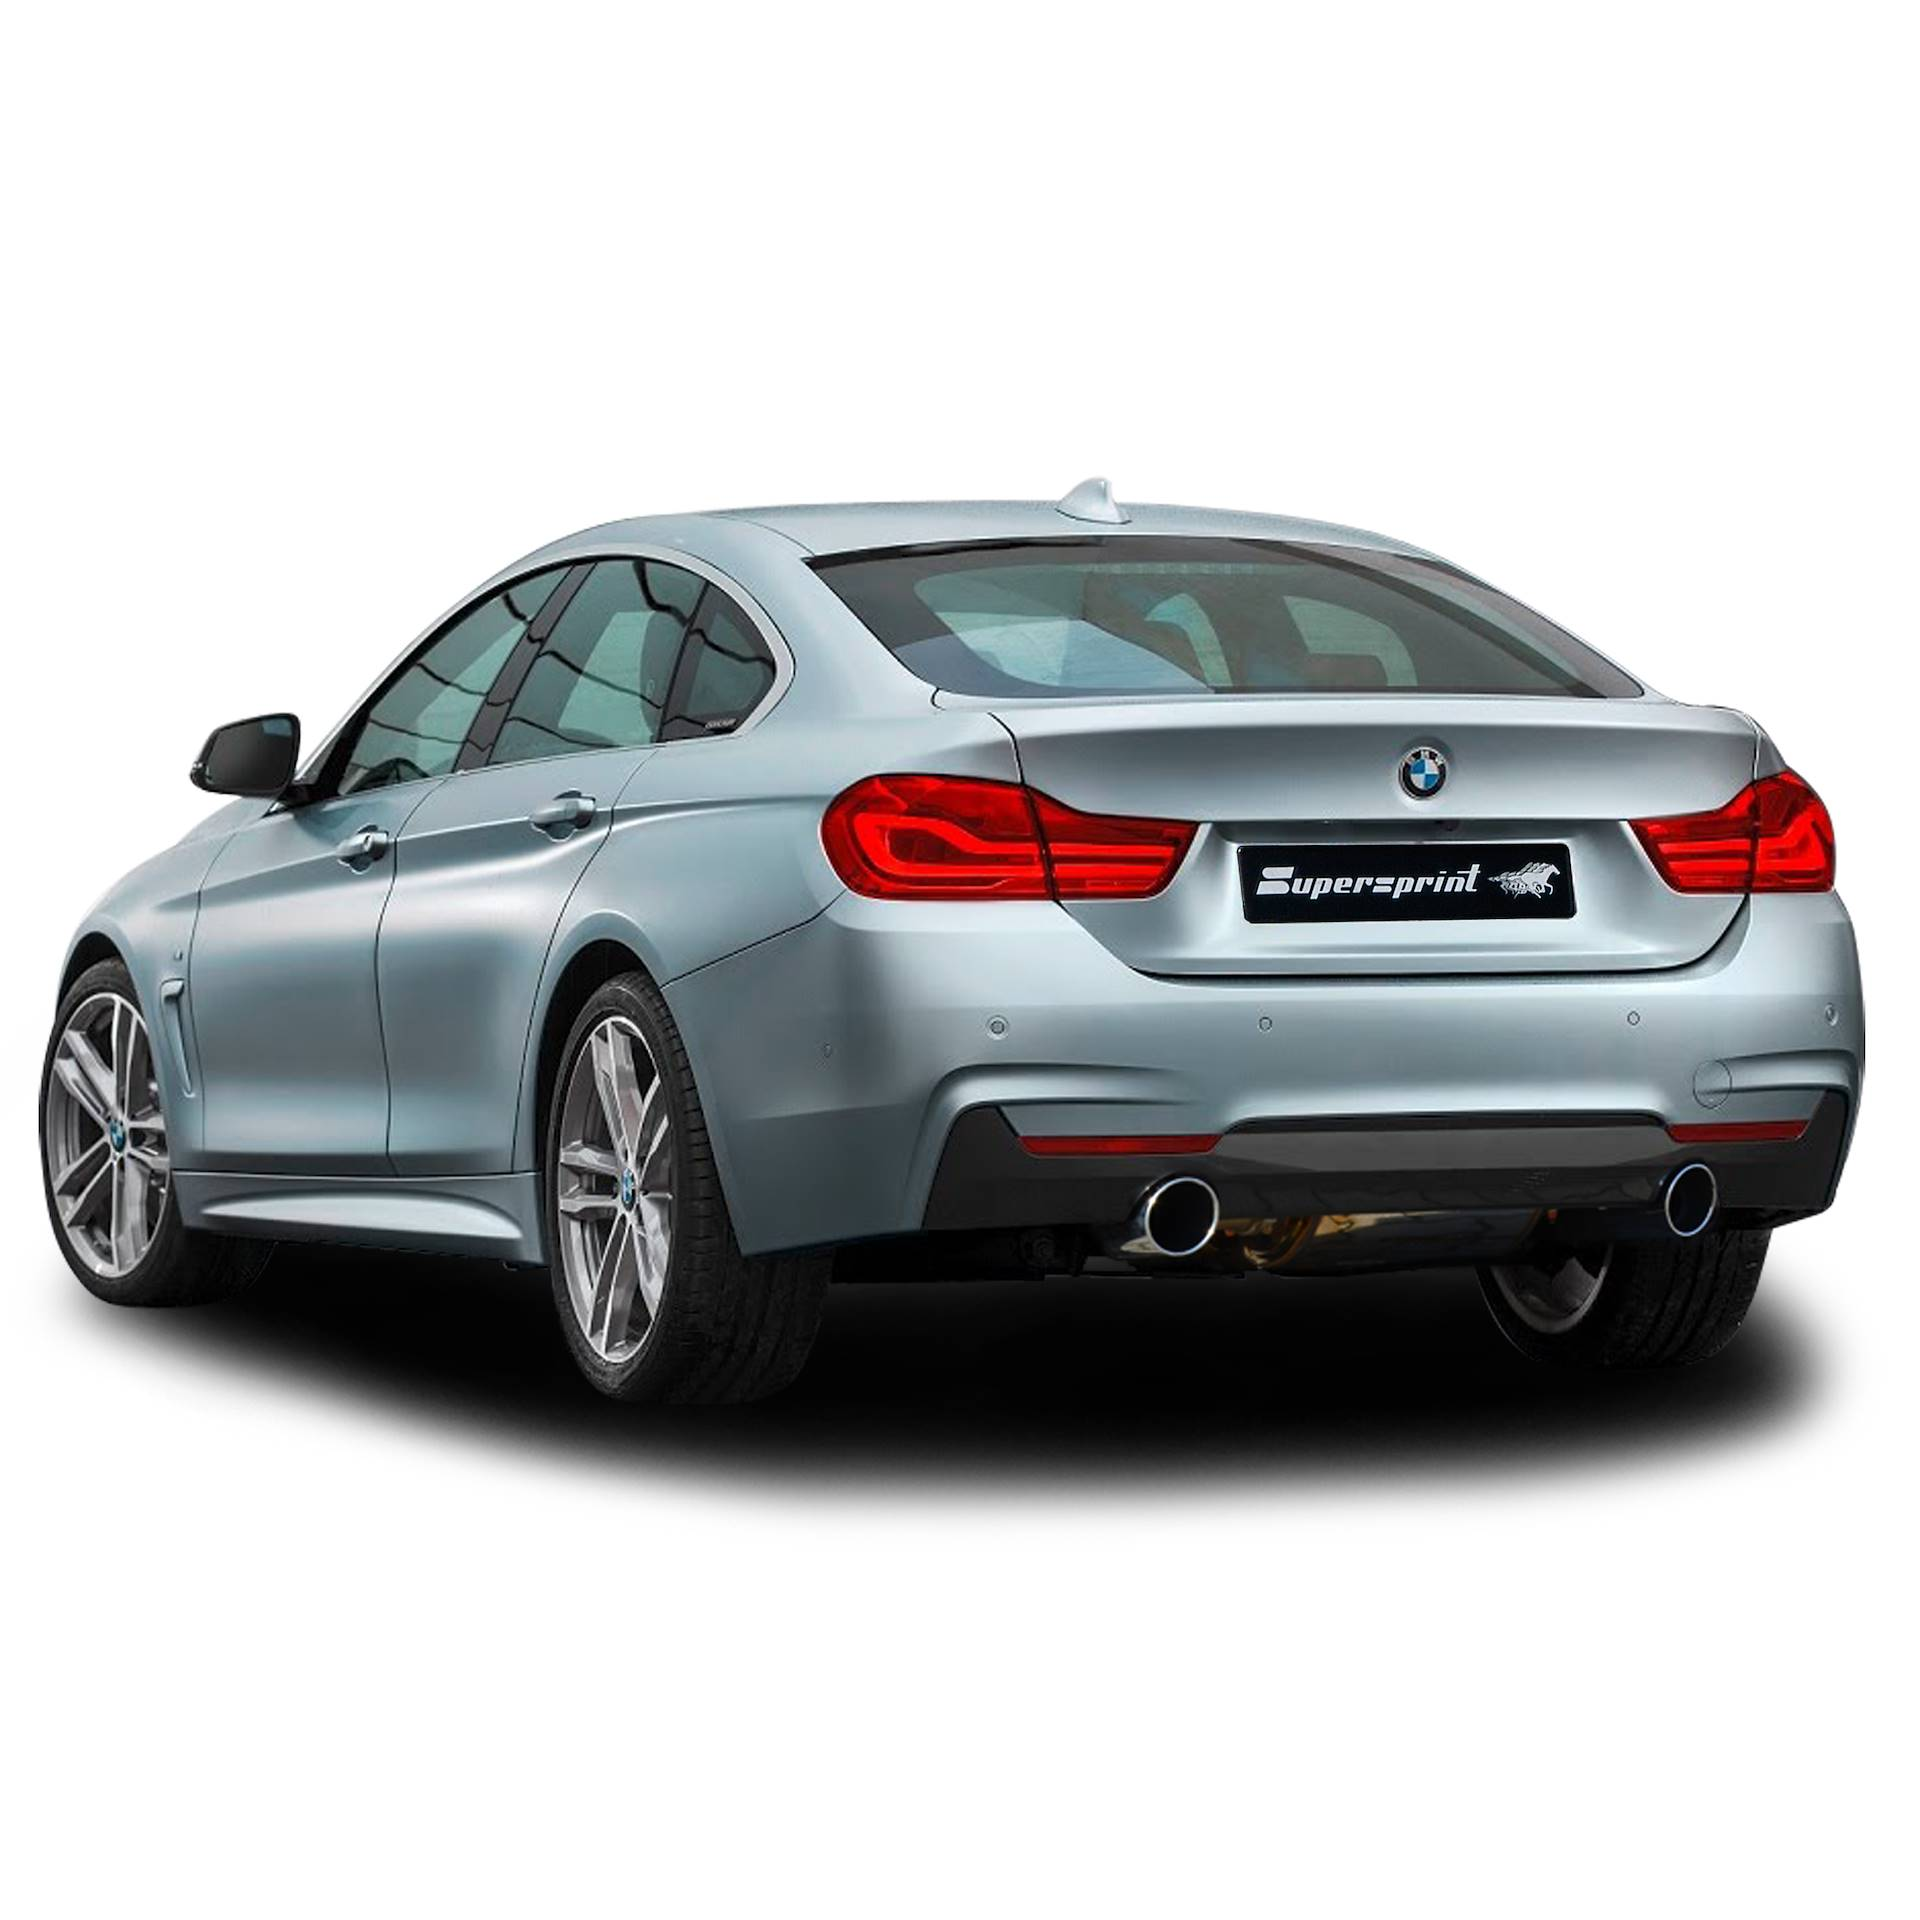 BMW - BMW F36 LCI Gran Coupè 440i (326 Hp) 2015 ->